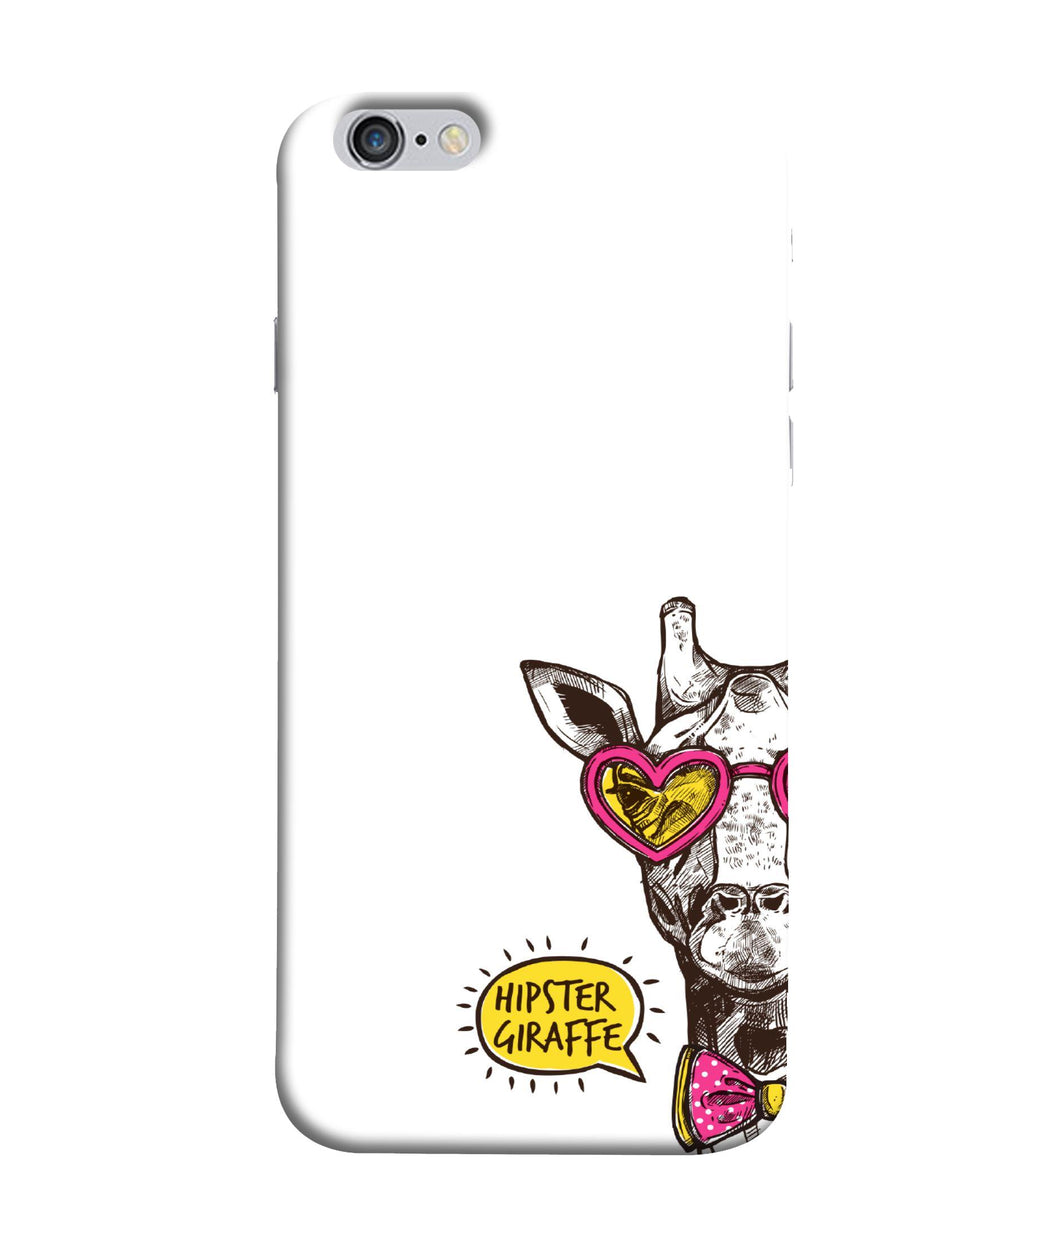 Apple Iphone 6 Plus Hipster Giraffe Mobile cover